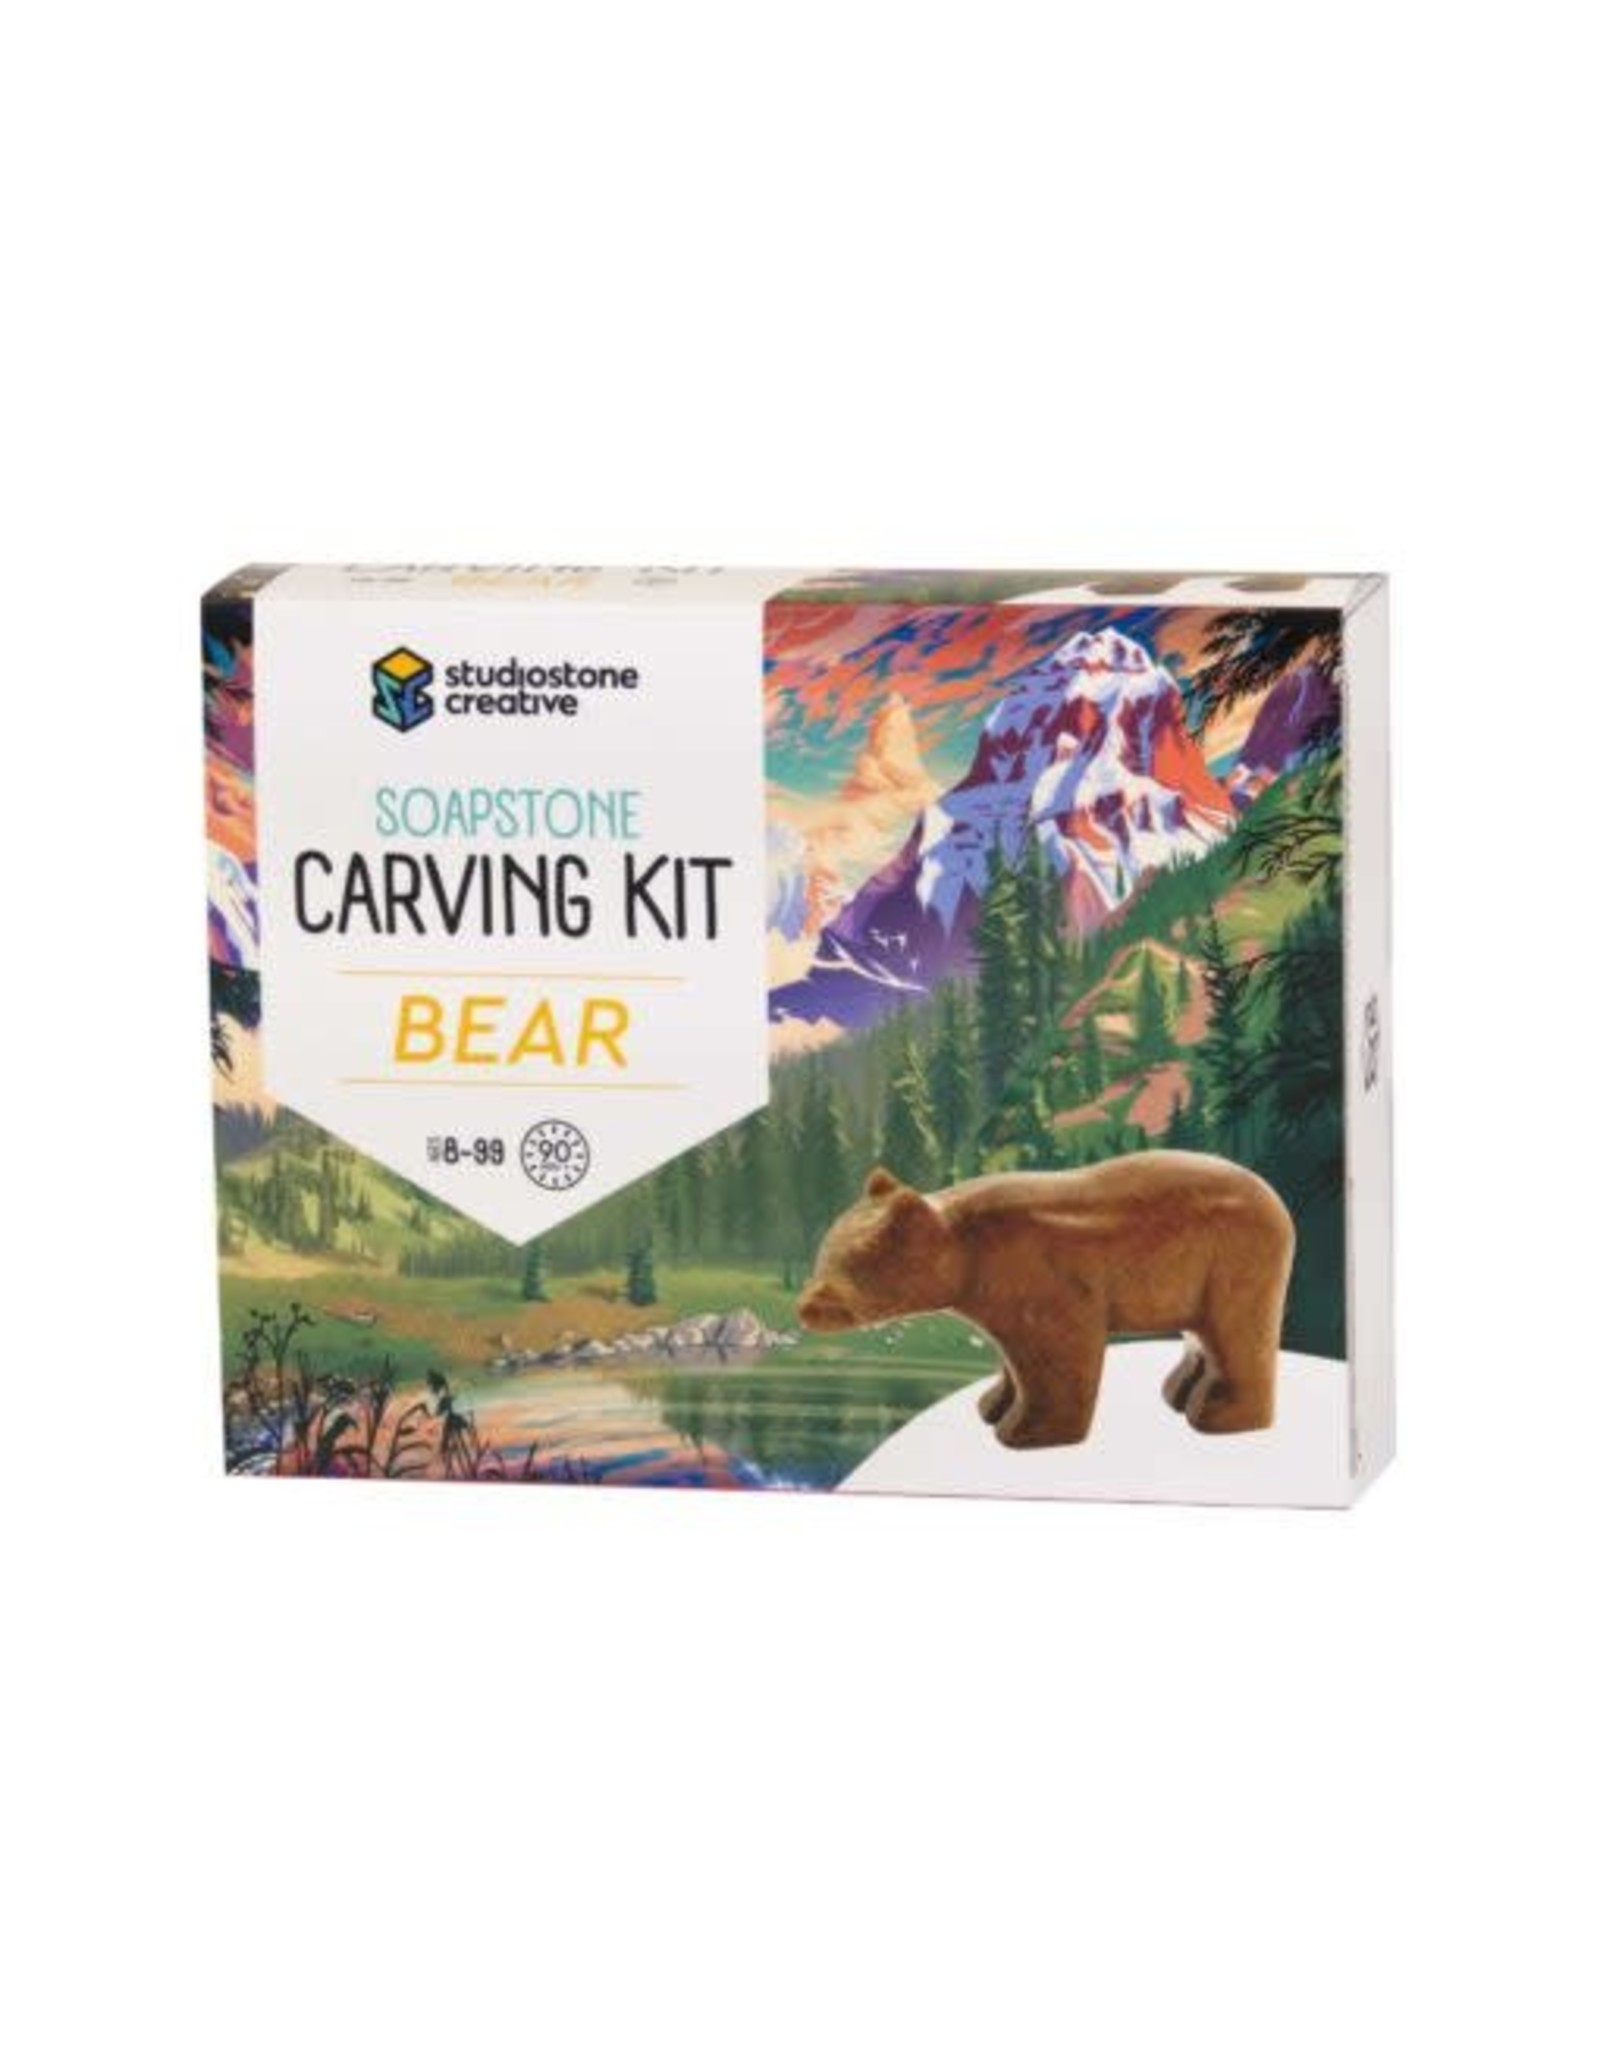 Studiostone Creative Bear Soapstone Carving Kit